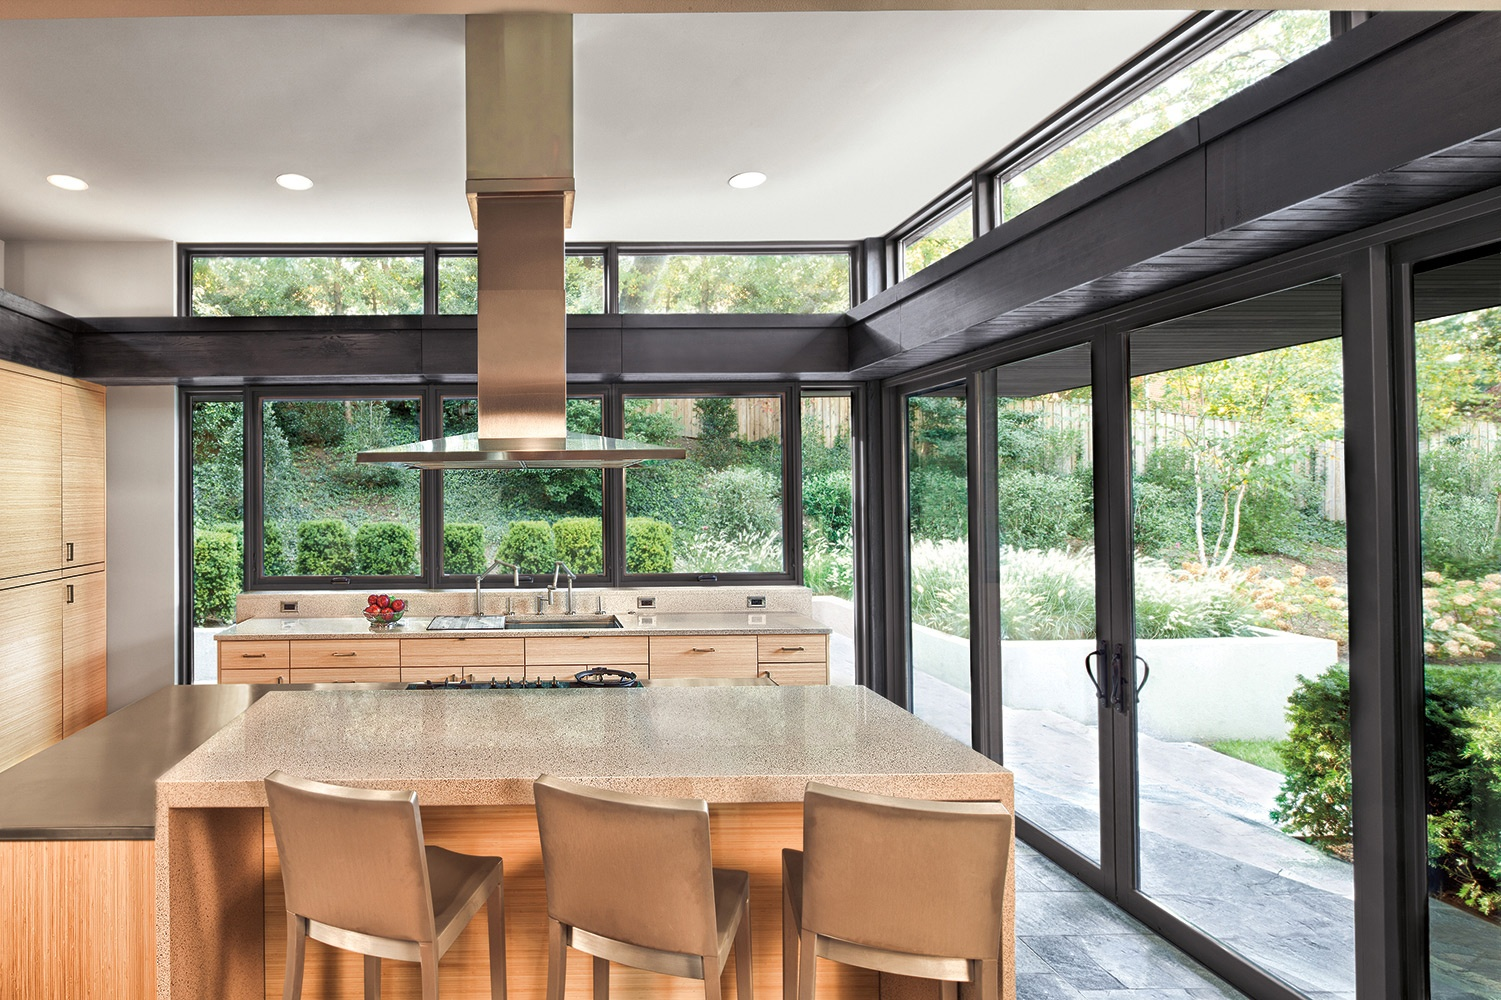 Decorating marvin sliding patio doors images : Marvin Windows and Doors